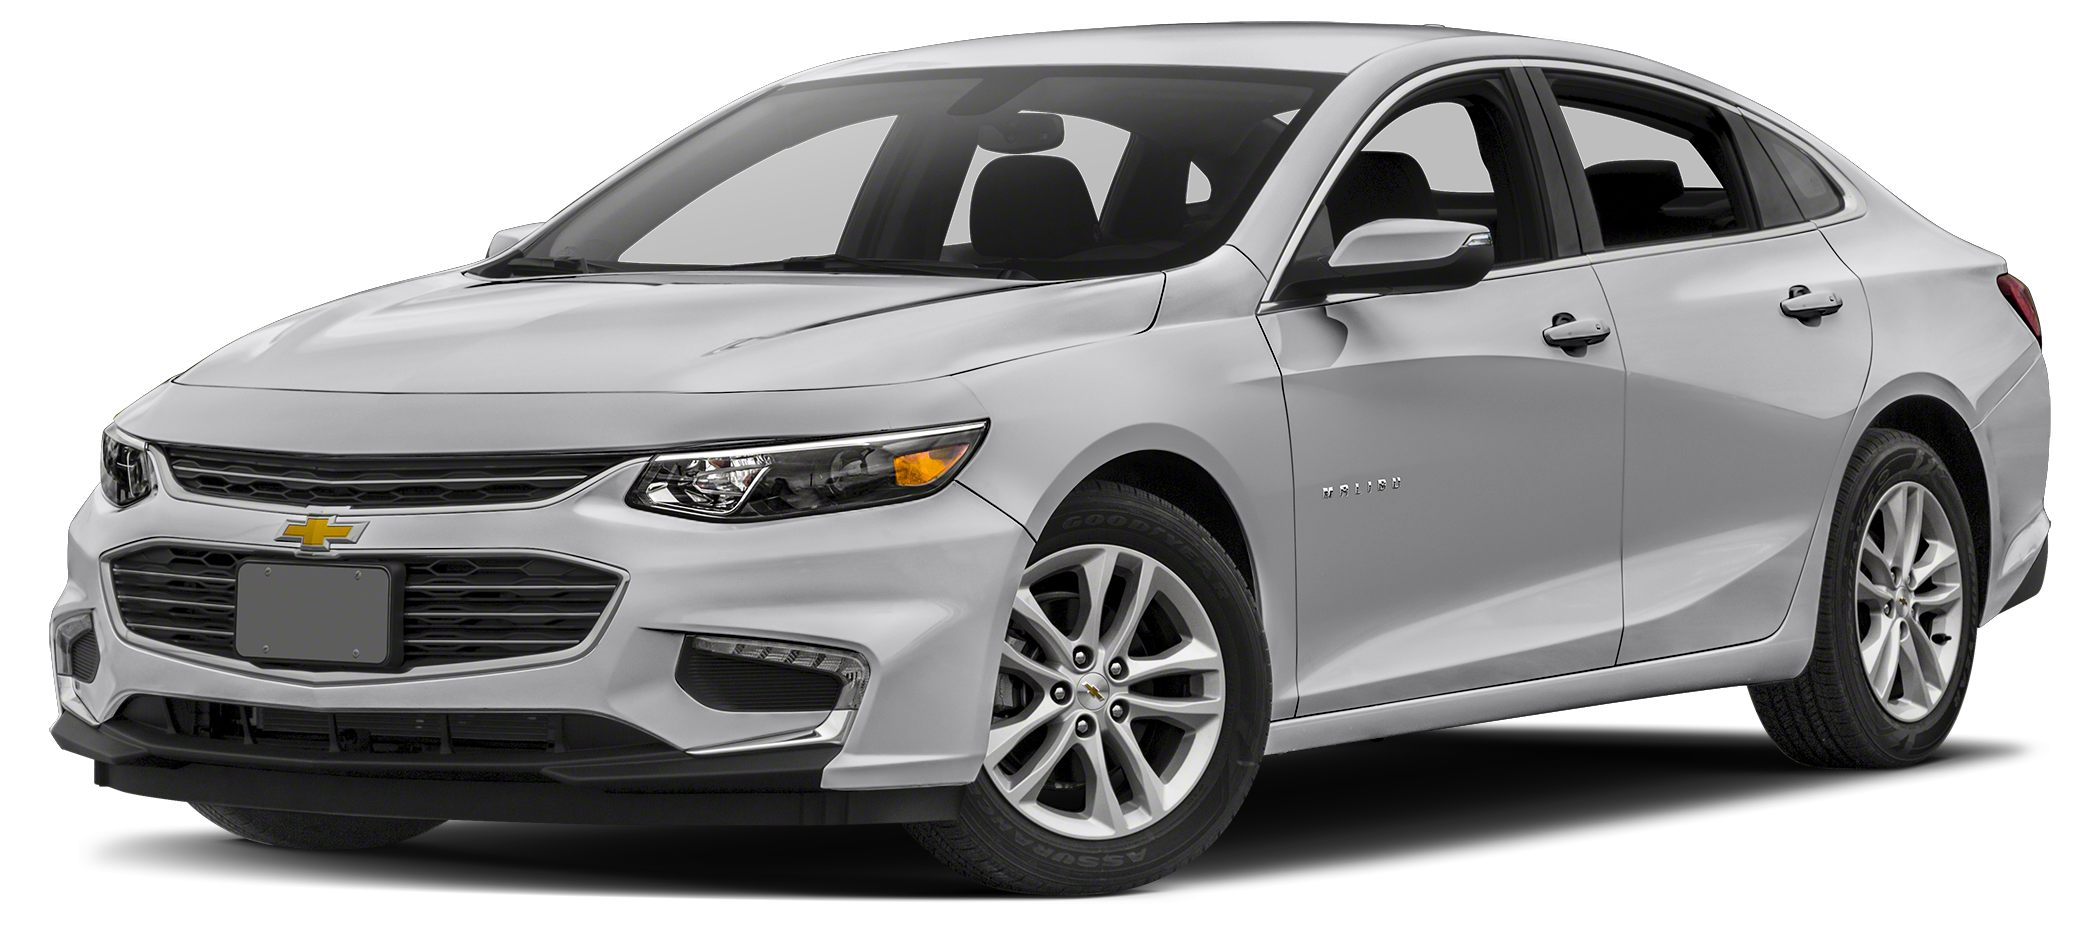 2016 Chevrolet Malibu LT w1LT WE SELL OUR VEHICLES AT WHOLESALE PRICES AND STAND BEHIND OUR CARS